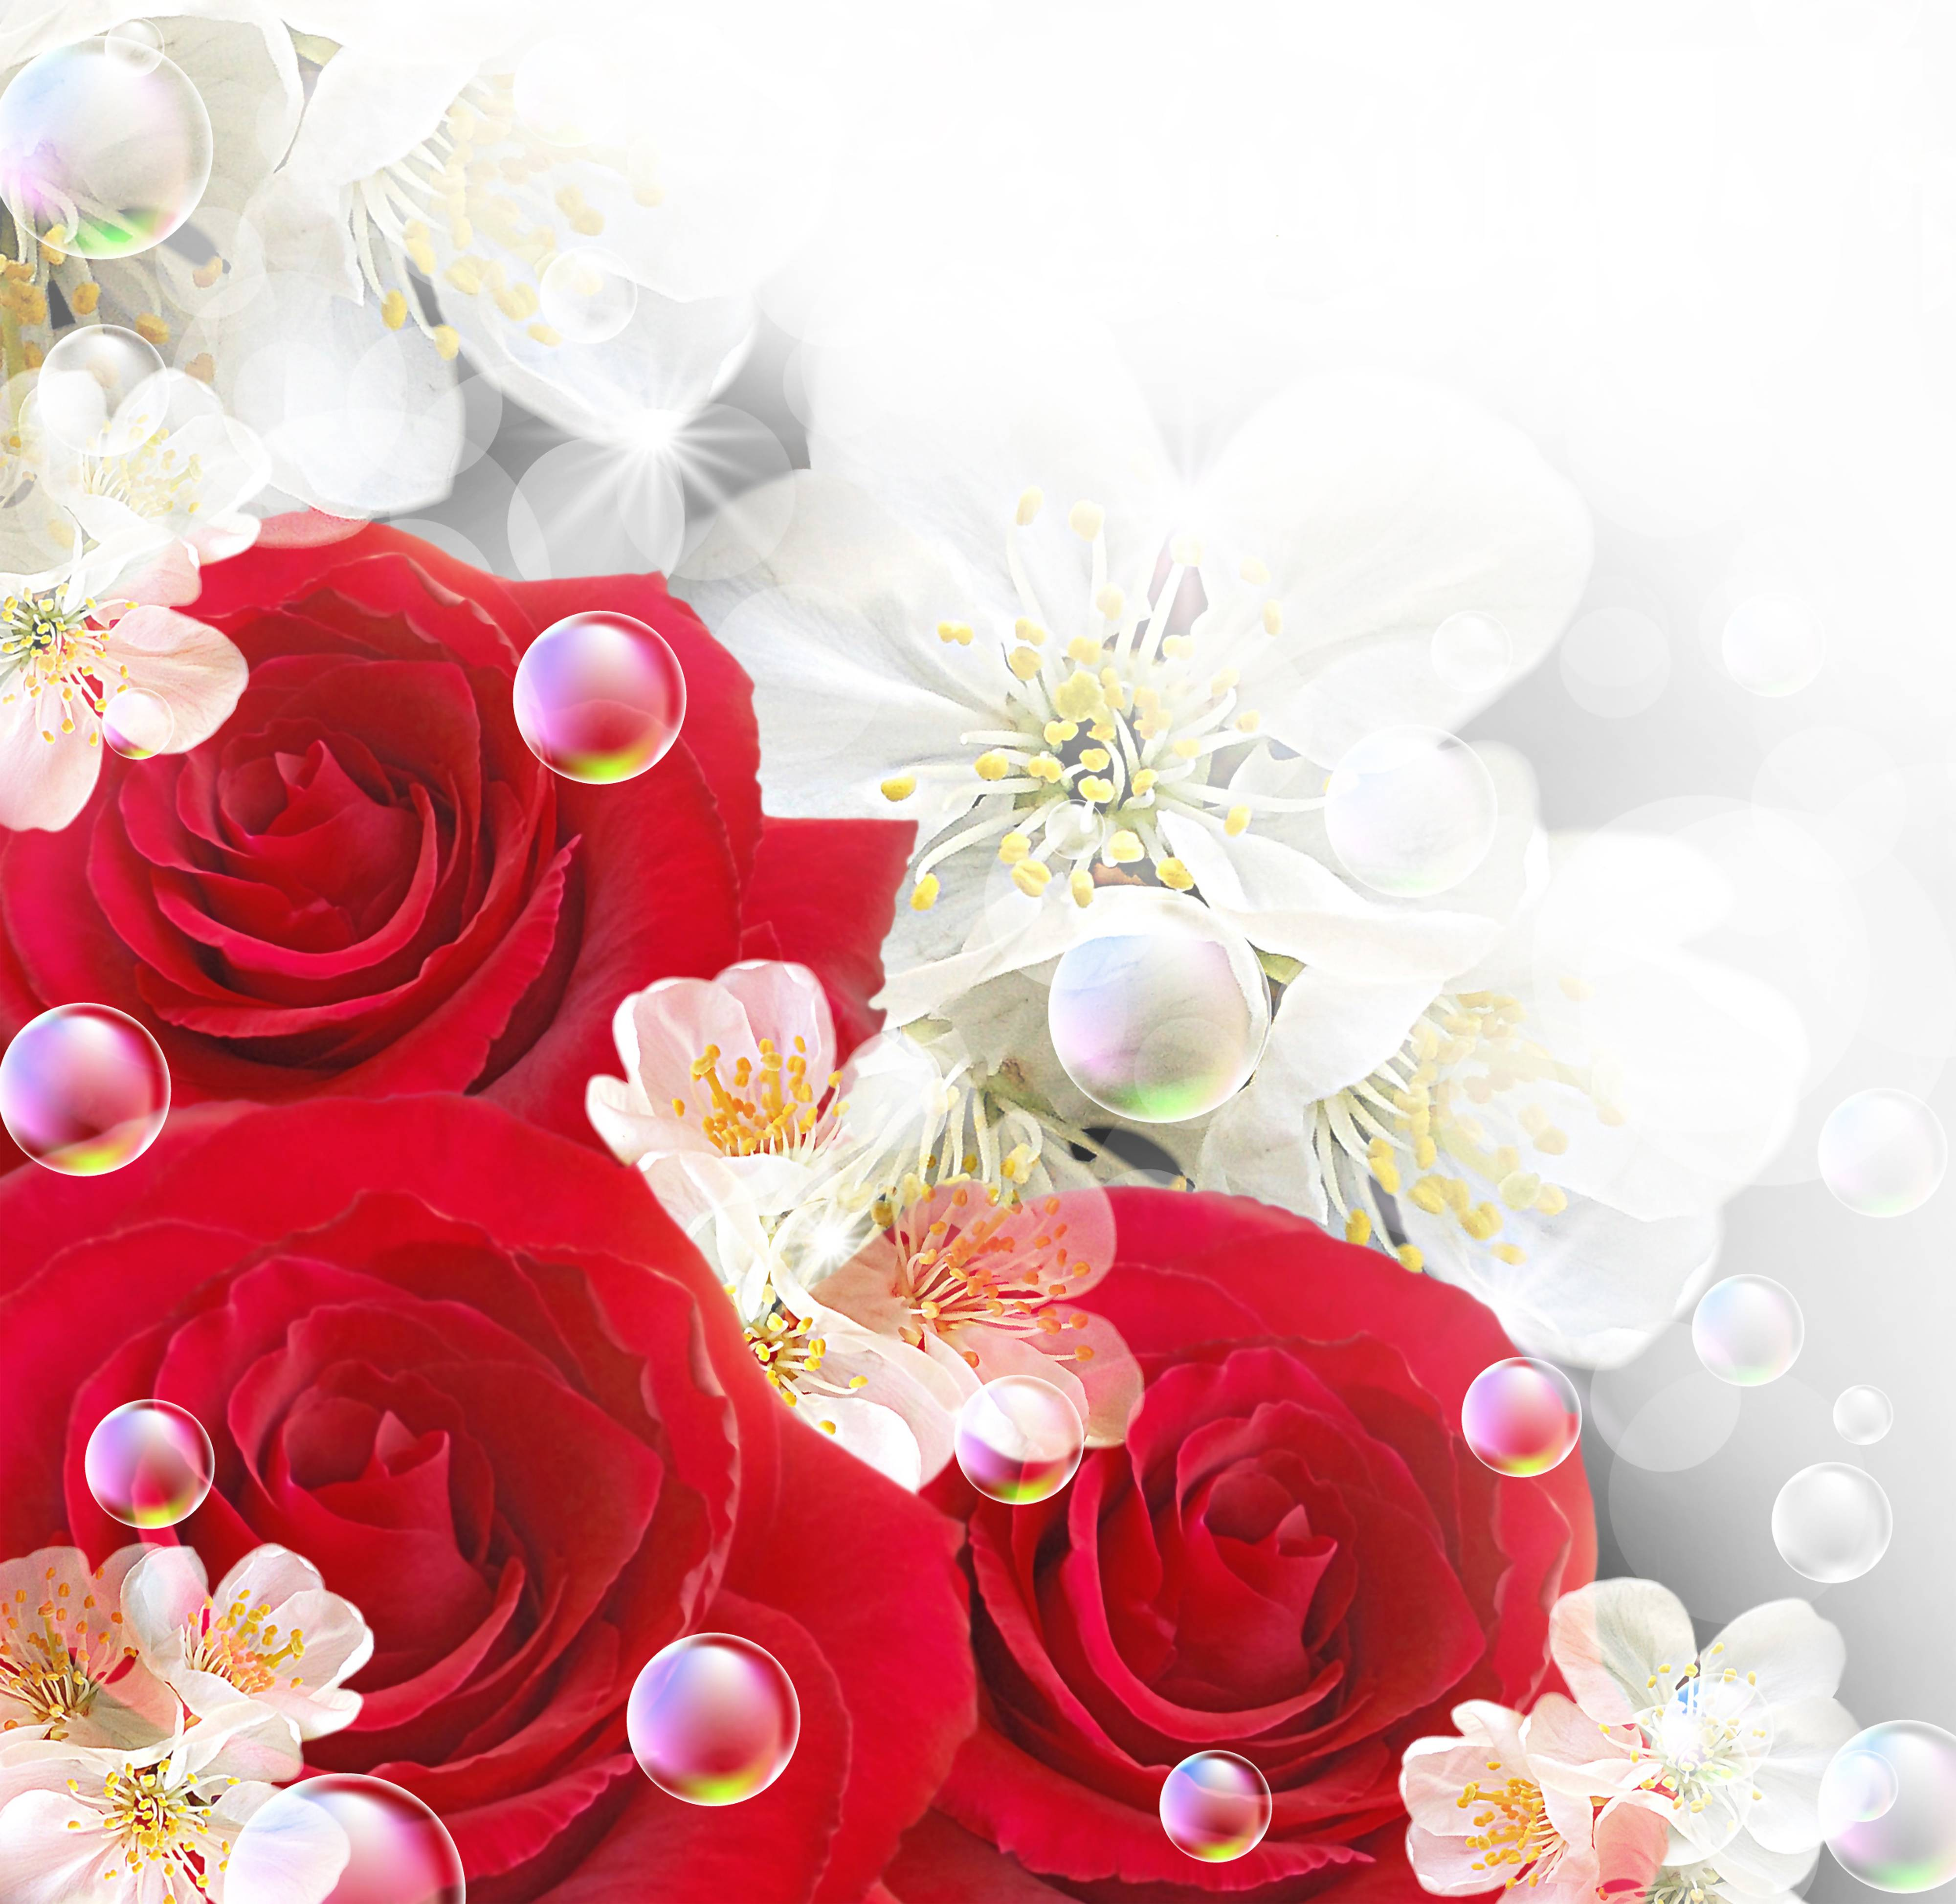 red roses with white backgrounds wallpaper cave